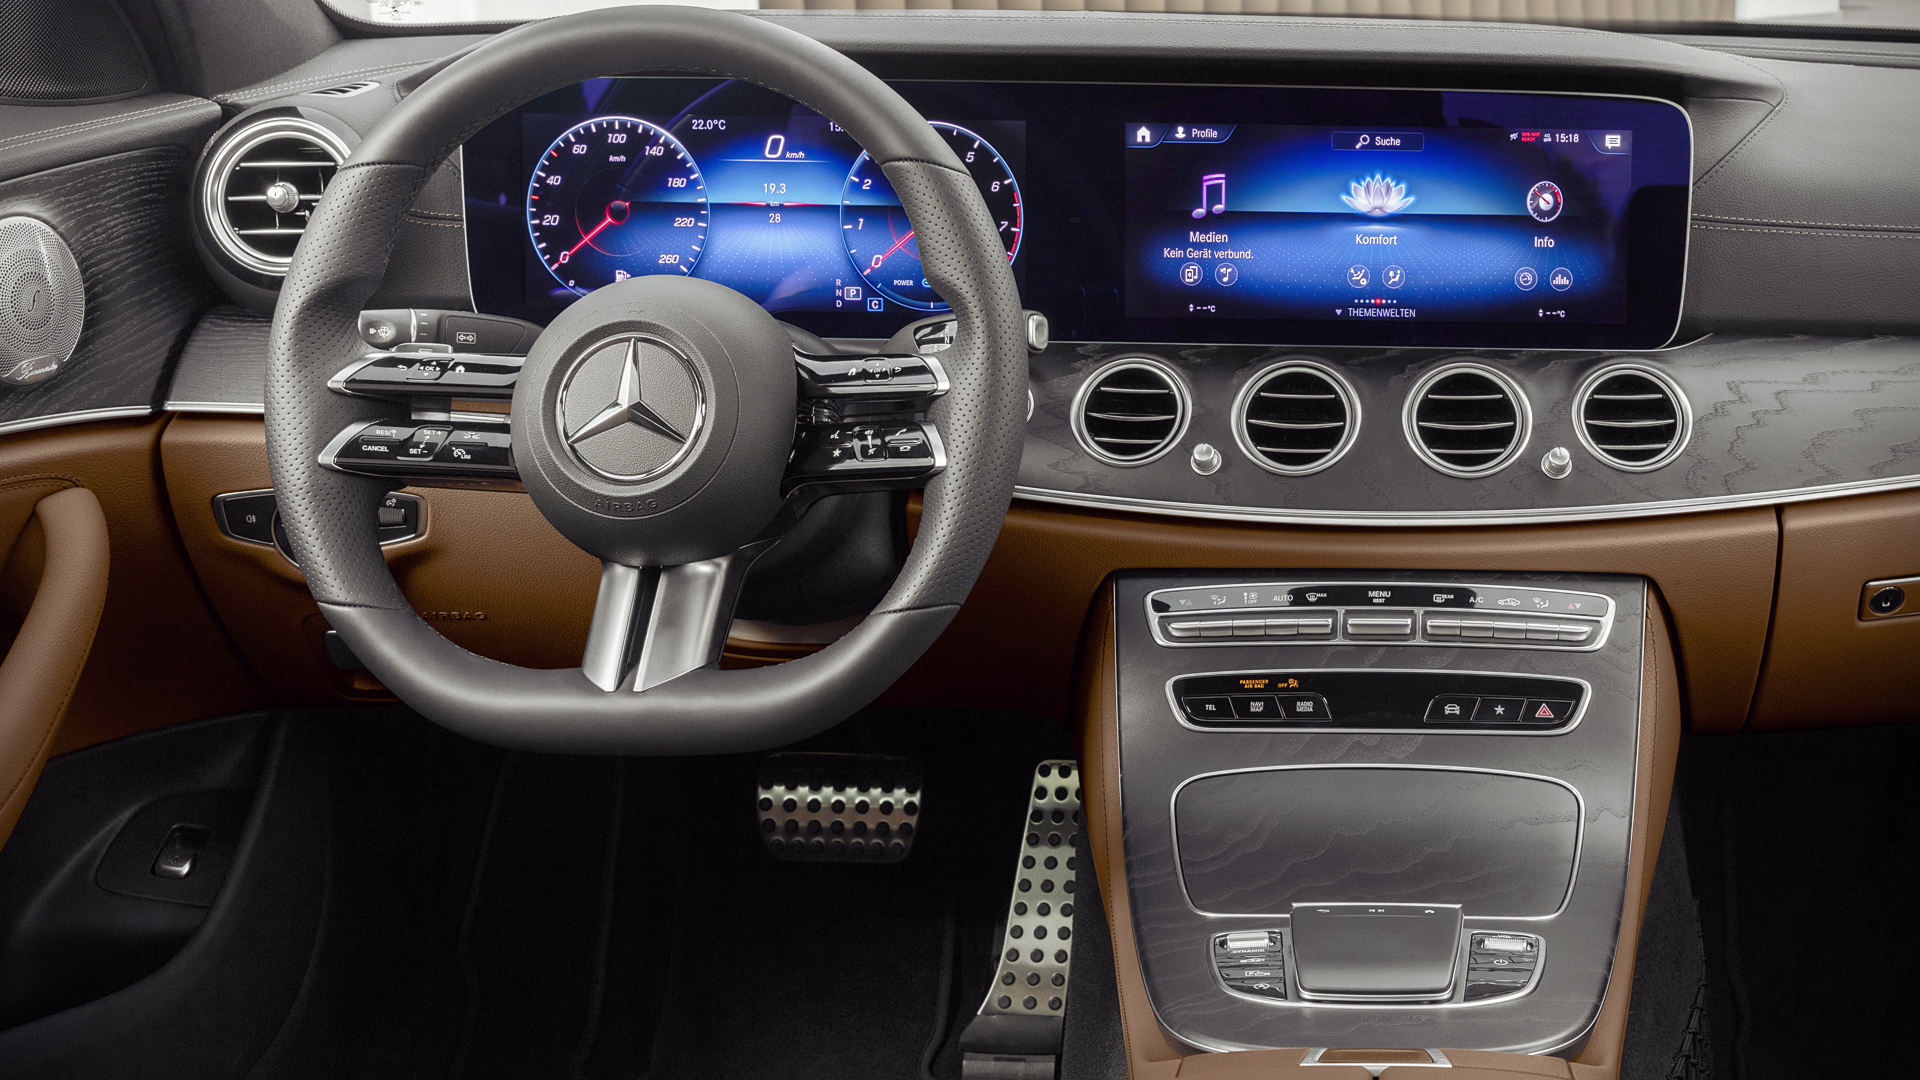 Mercedes Benz E-Class 2021 Interior Wallpaper